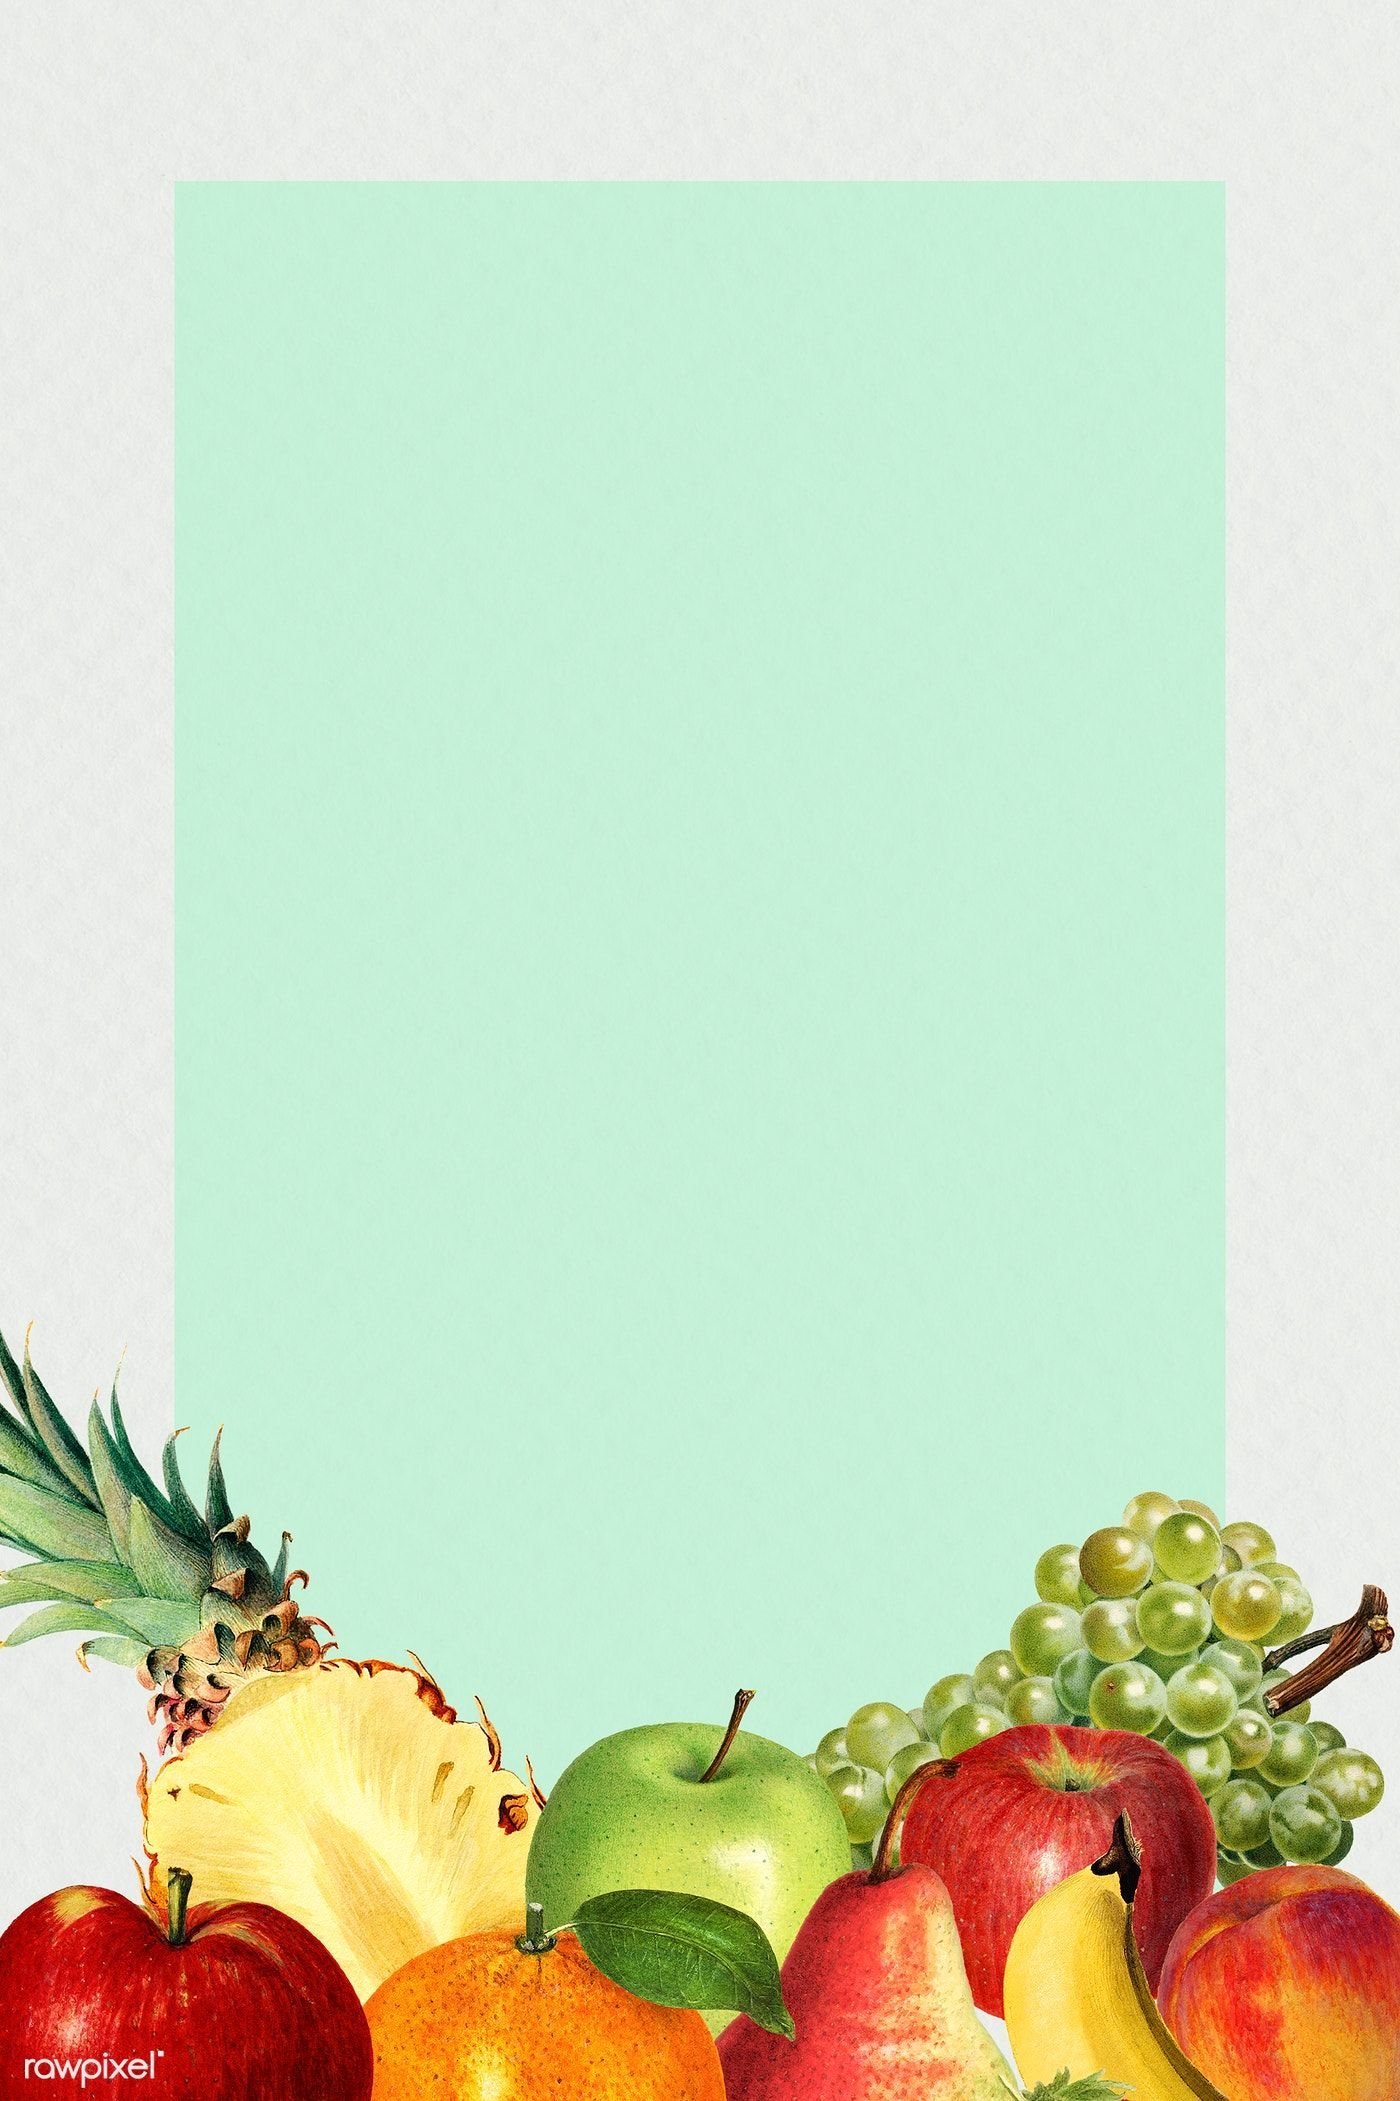 Download Premium Illustration Of Hand Drawn Mixed Tropical Fruits On A Fruit Wallpaper Border Design Tropical Fruits